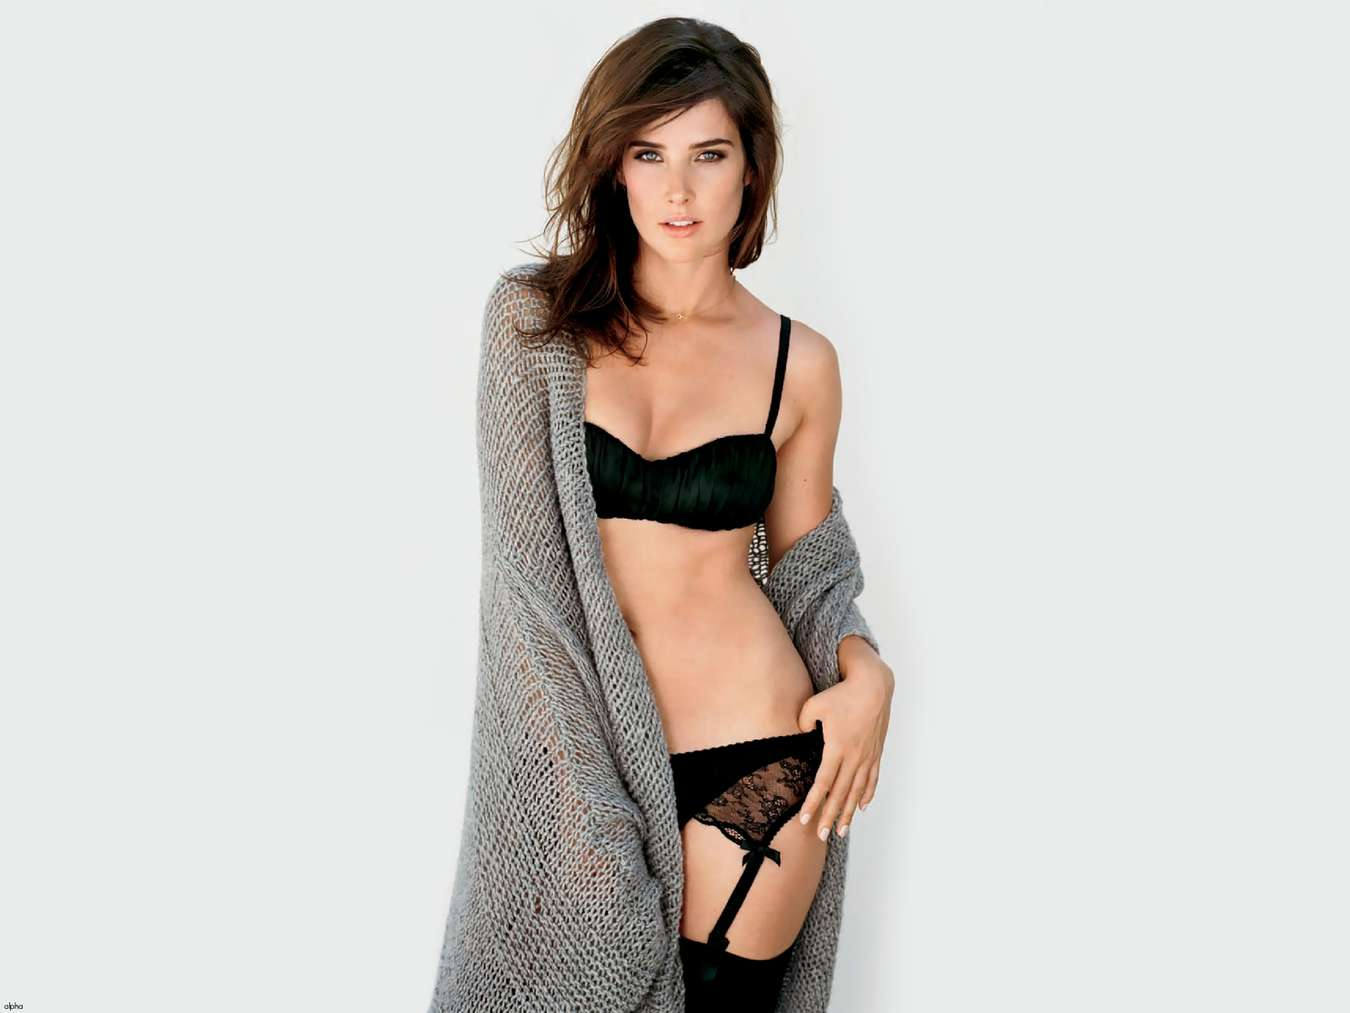 Hot Cobie Smulders naked (35 foto and video), Pussy, Hot, Instagram, cleavage 2020